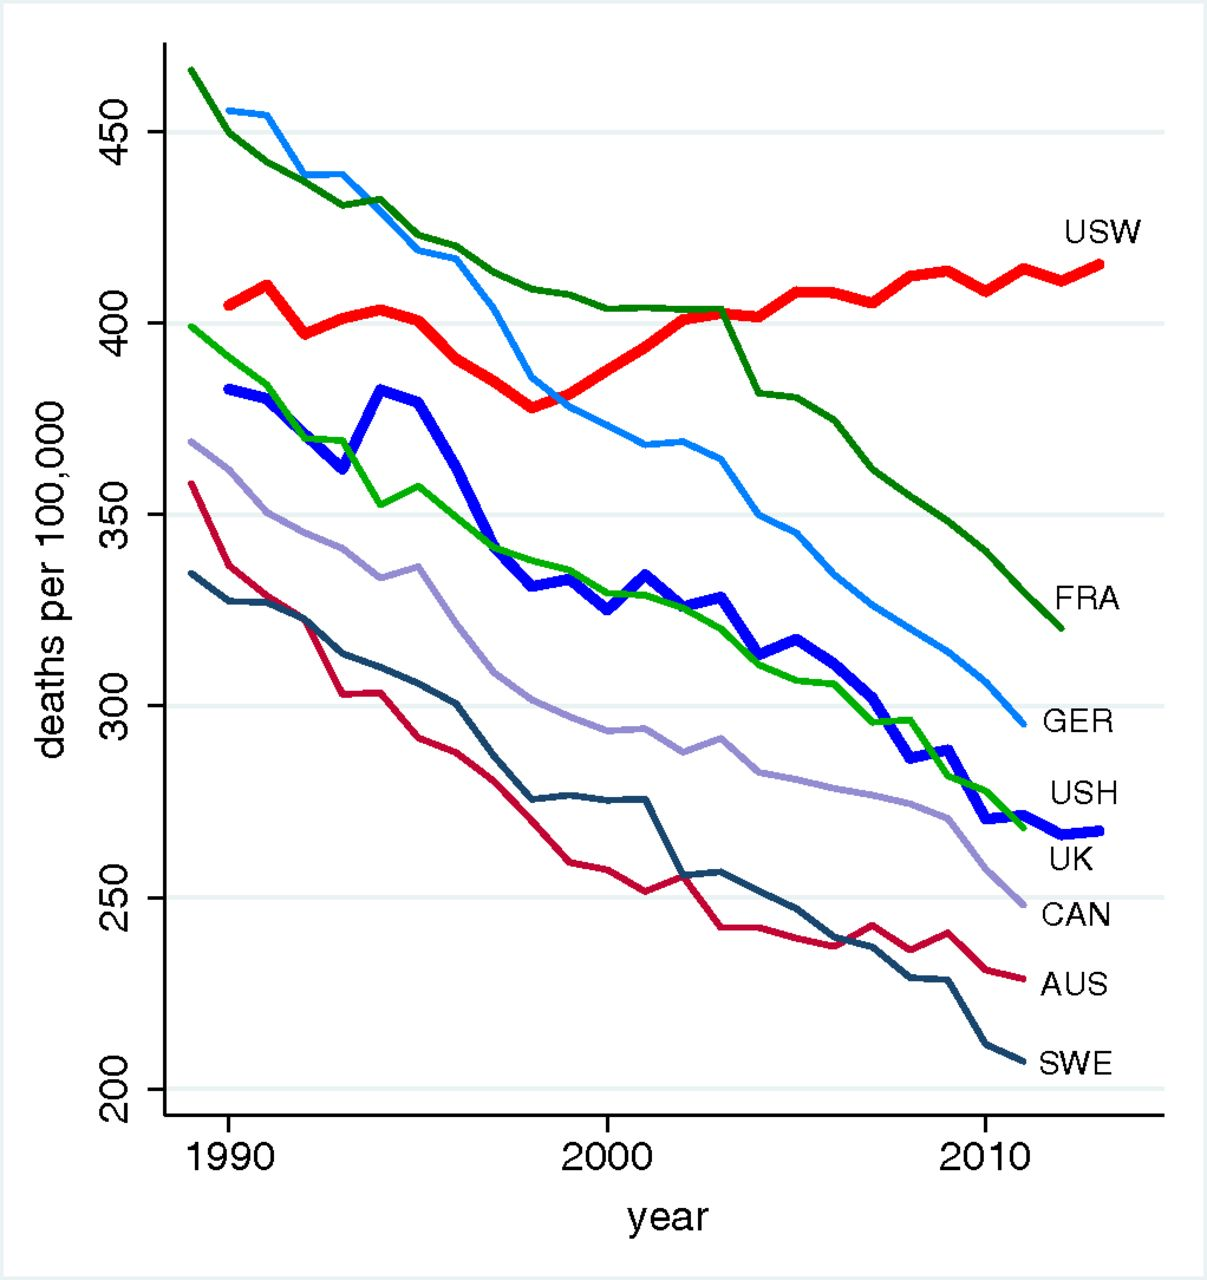 Mortality Rate of U.S. Whites (USW) Is Increasing Relative to Other Advanced Countries and U.S. Hispanics (USH)